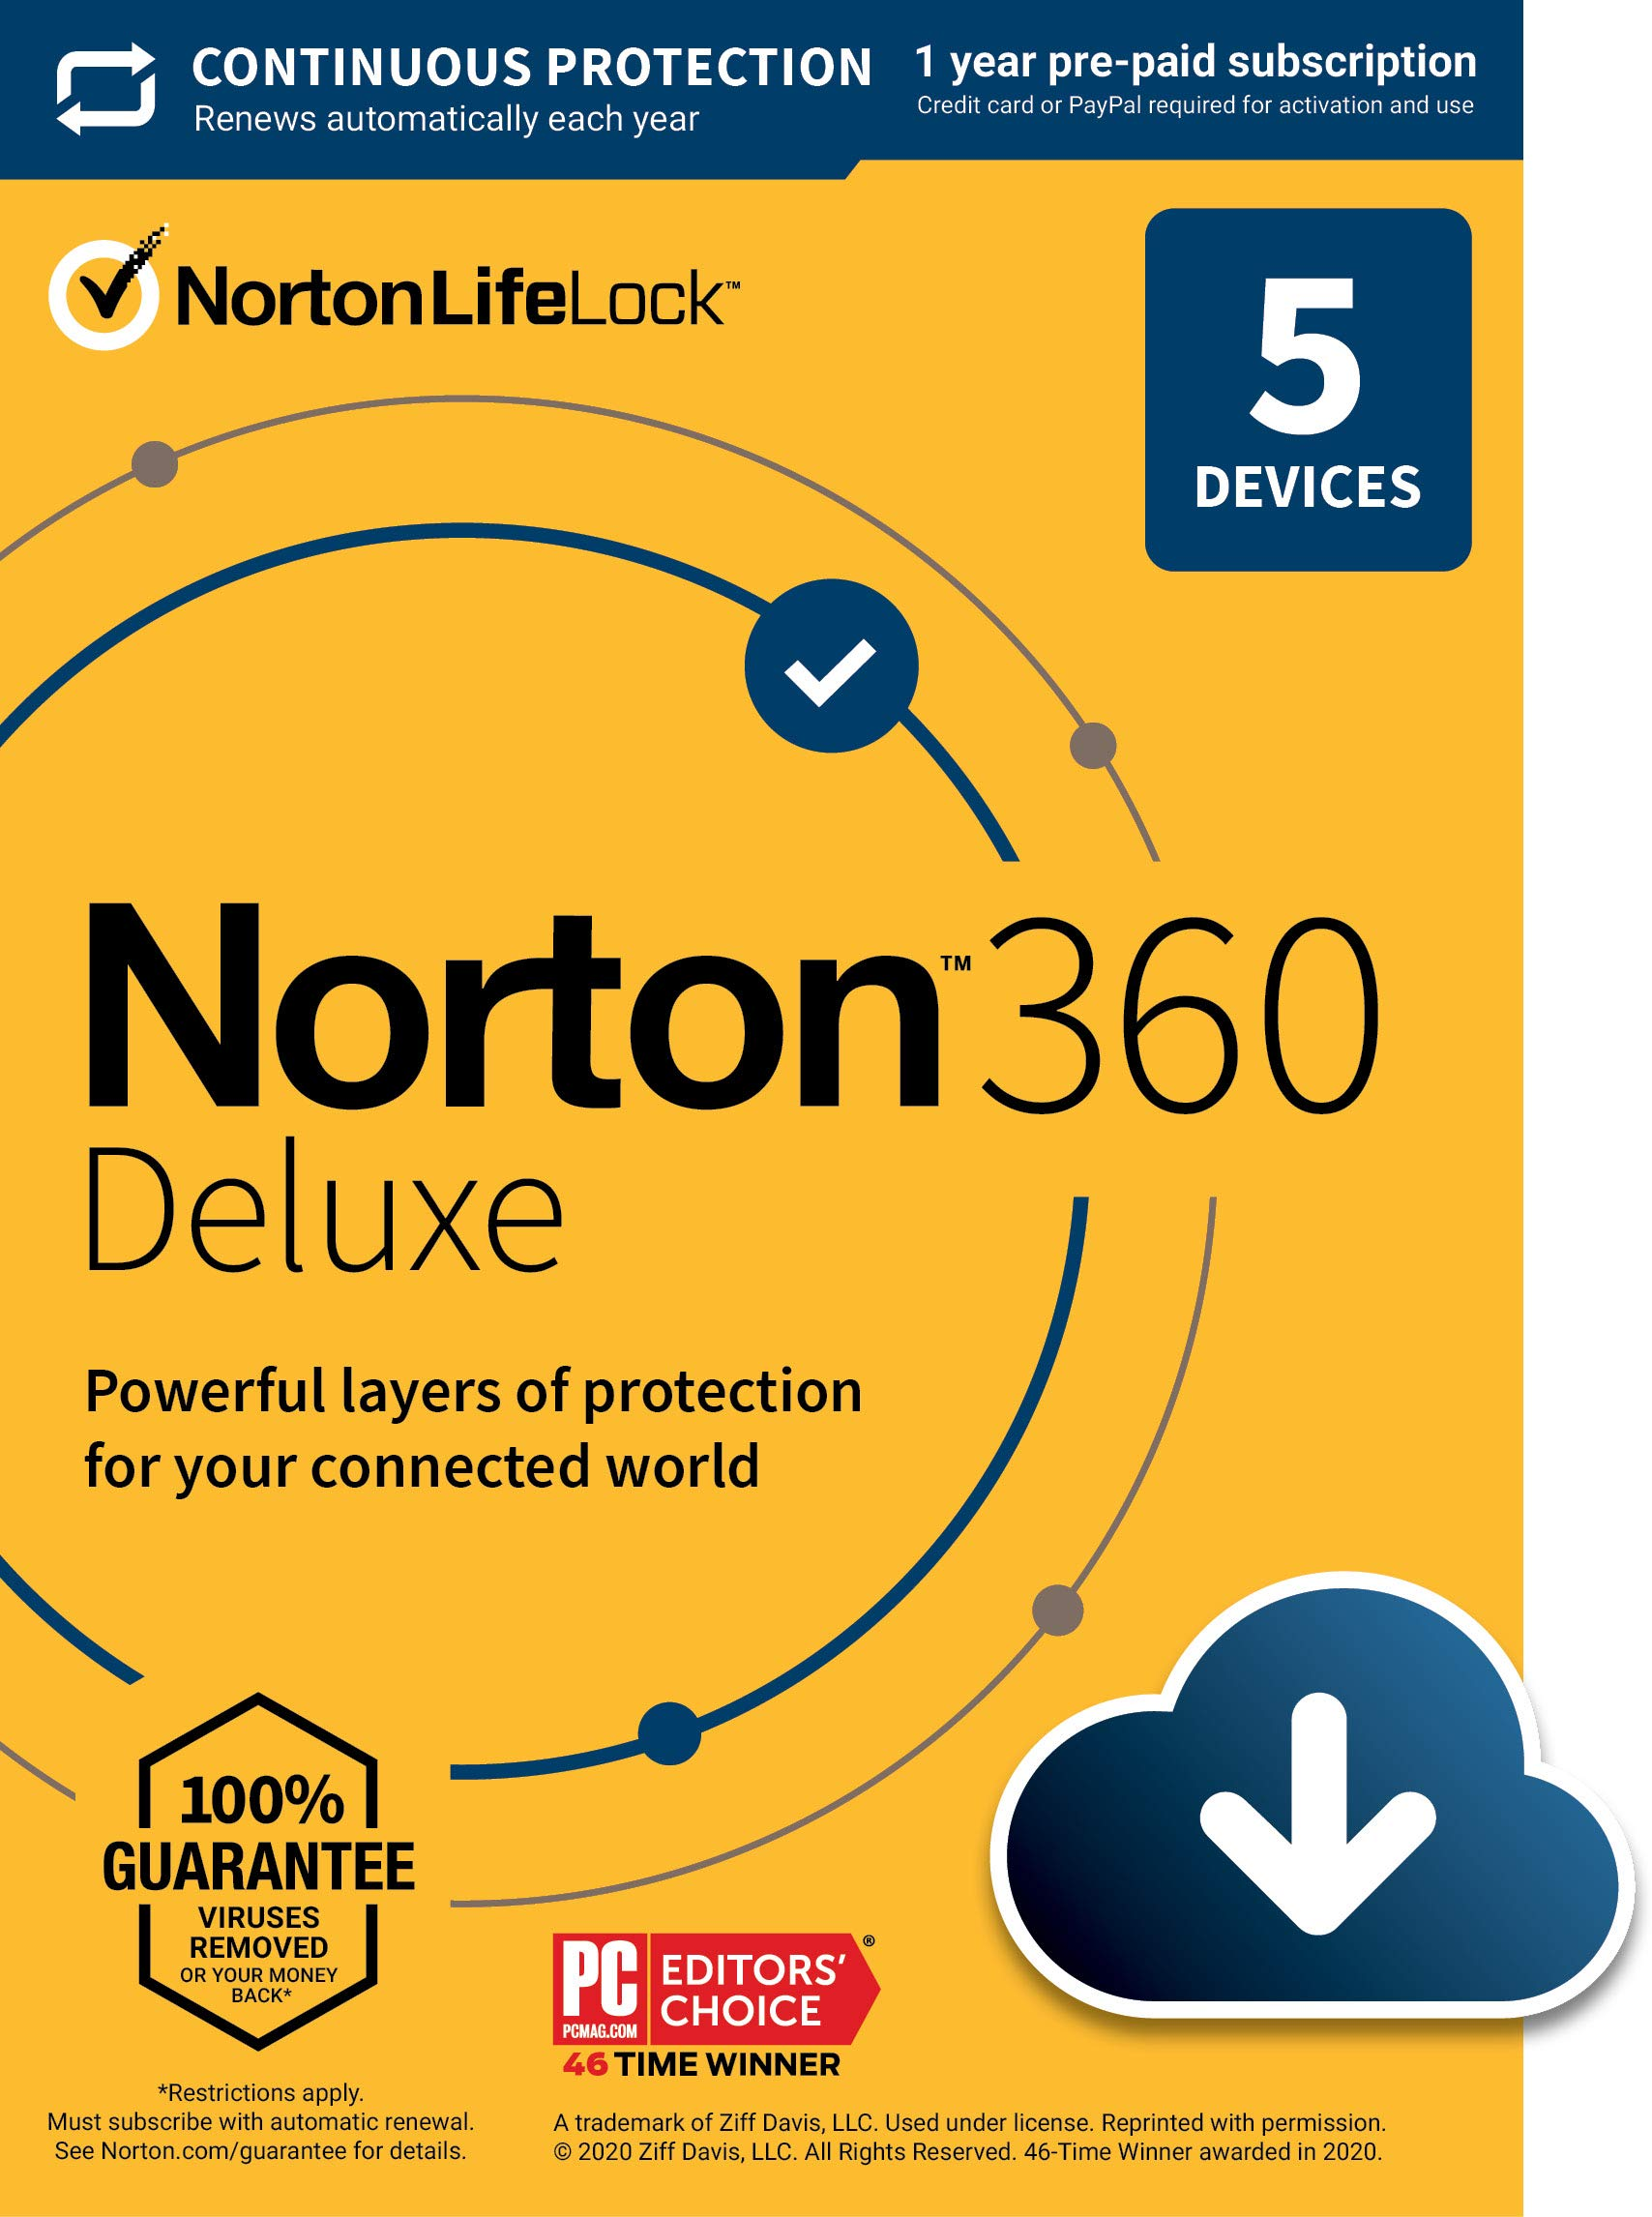 Norton 360 Deluxe  Antivirus software for 5 Devices with Auto Renewal - Includes VPN, PC Cloud Backup & Dark Web Monitoring powered by LifeLock [Download]